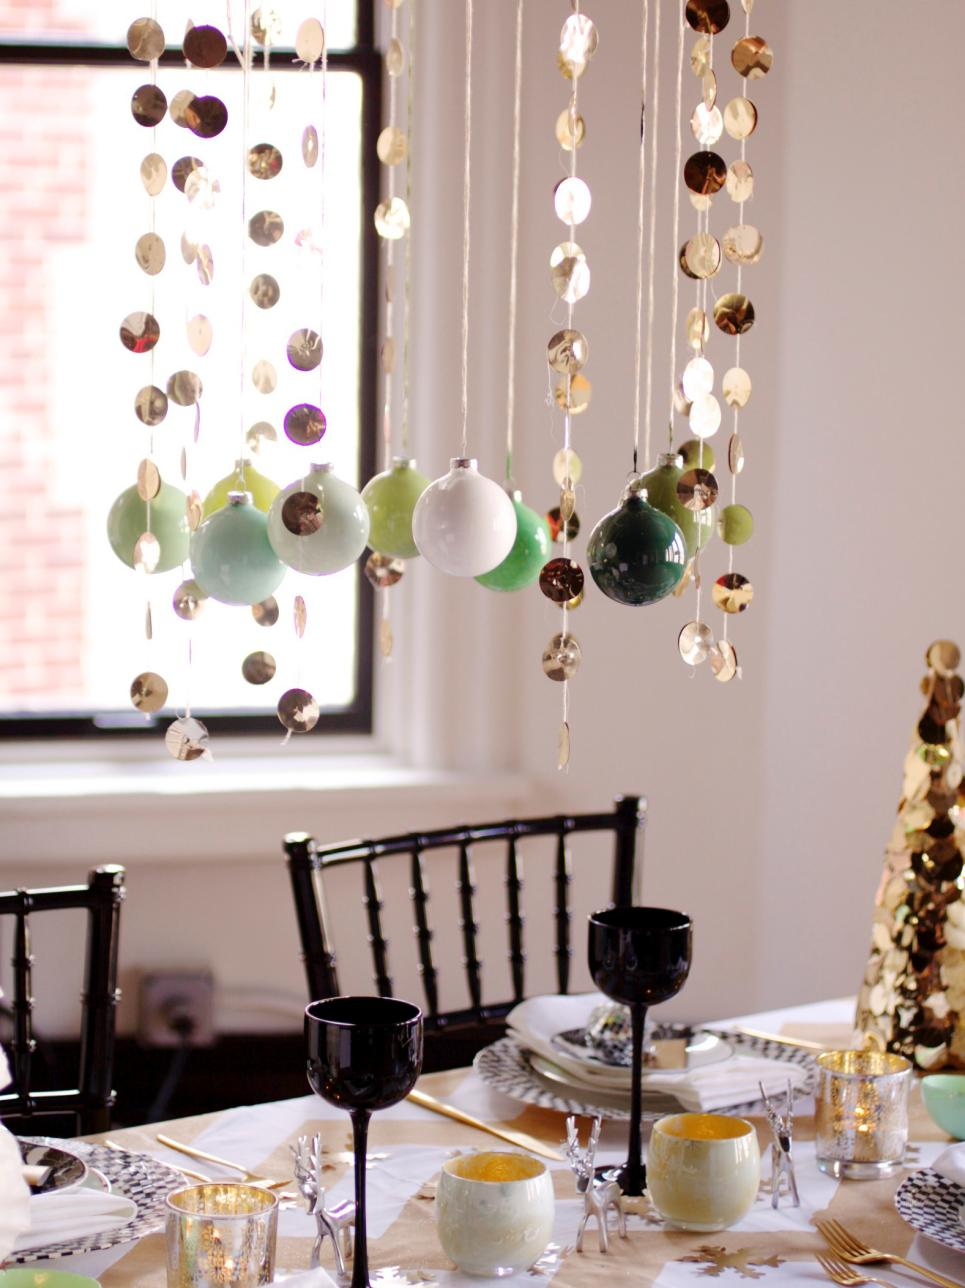 Hanging Christmas Decorations Diy.Decorate The Tables With These 50 Diy Christmas Centerpieces